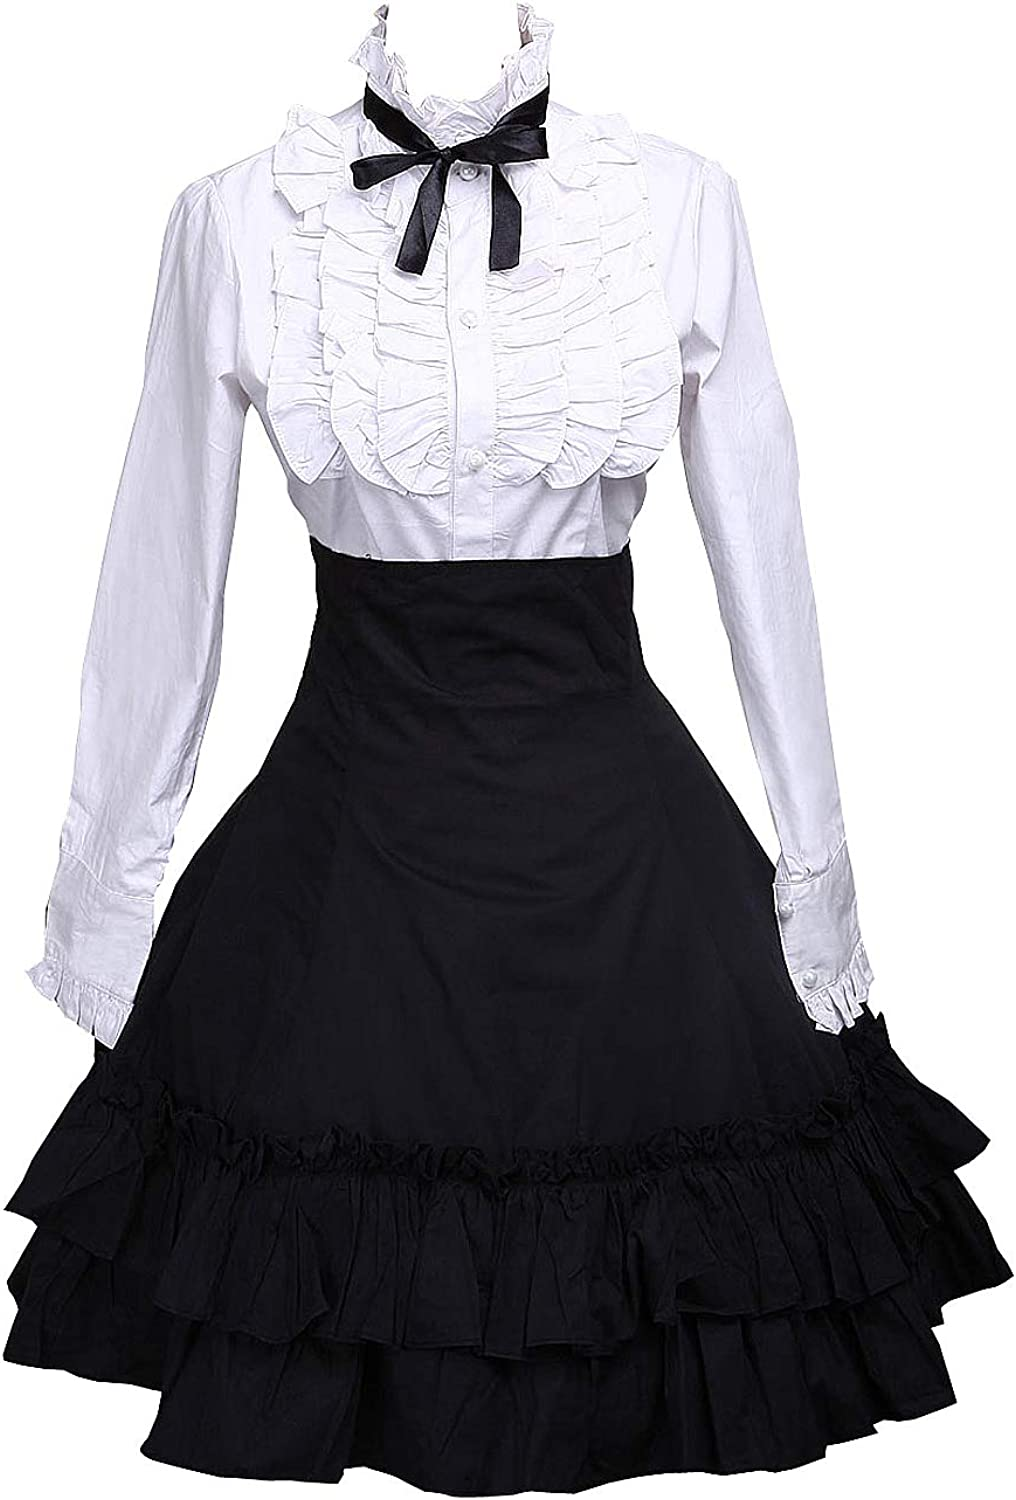 Antaina Black Cotton Pleated Lolita Skirt and Victorian Bow Tie Blouse